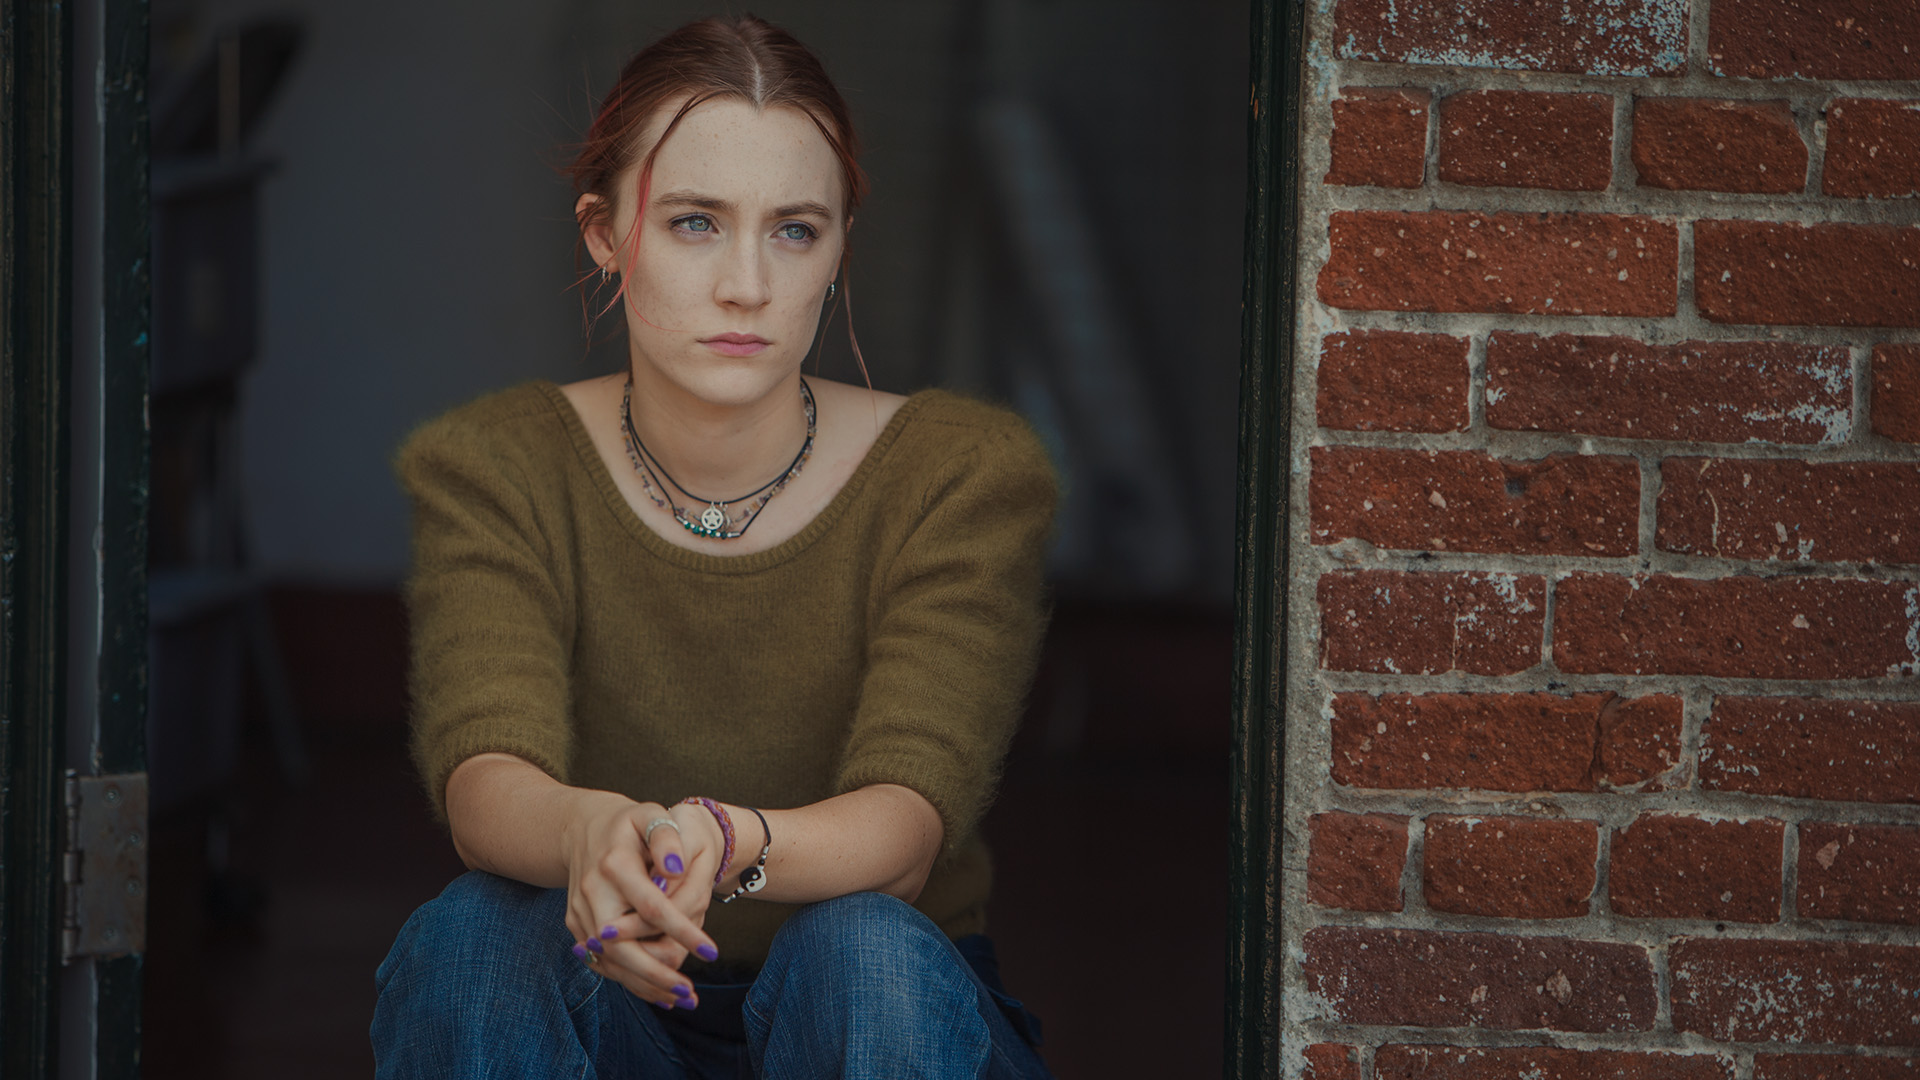 Movie Watch: Amarillo film options for Nov. 30 to Dec. 7, including 'Lady Bird,' 'Three Billboards' and 'LBJ'